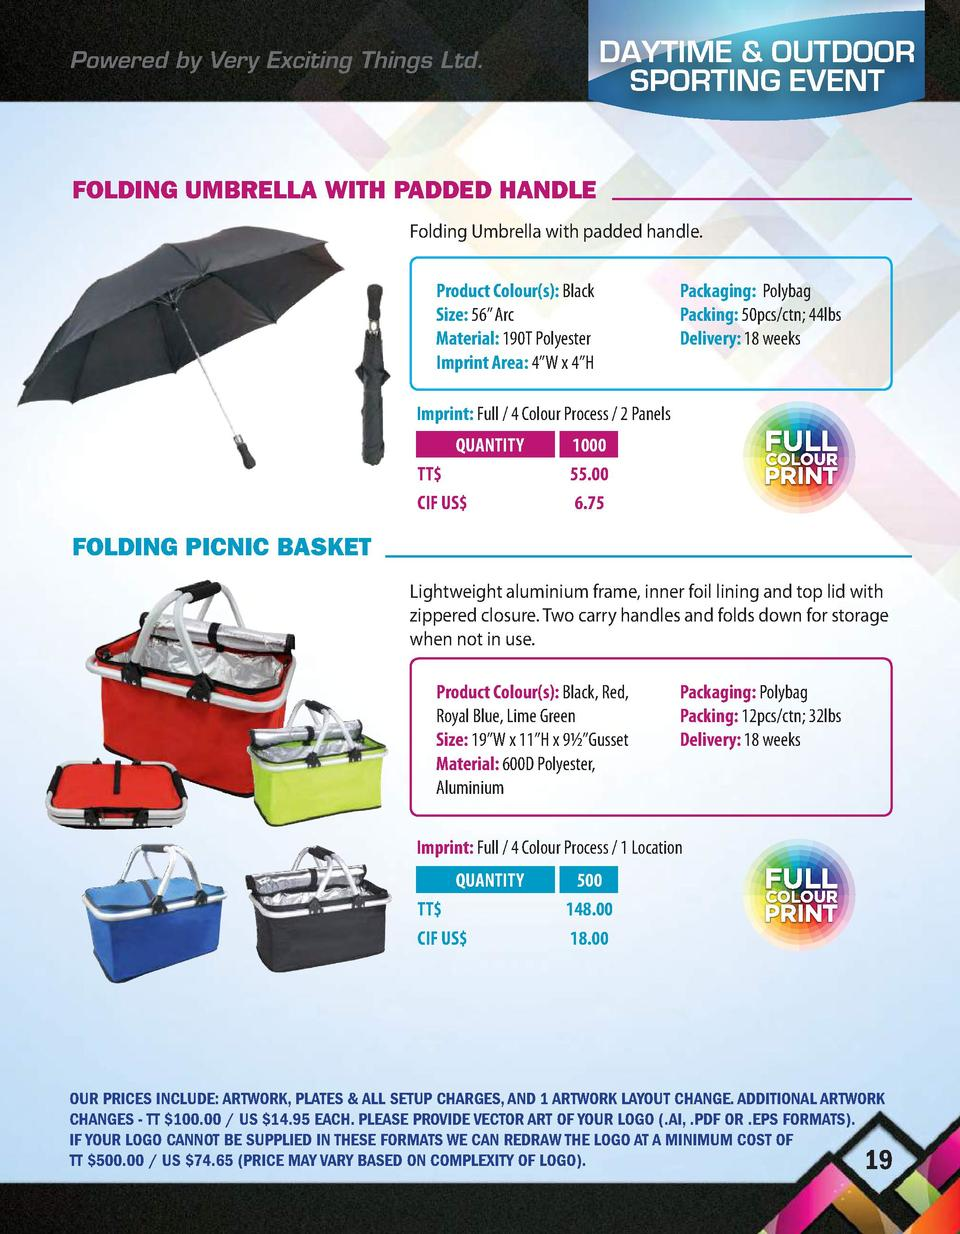 Powered by Very Exciting Things Ltd.  DAYTIME   OUTDOOR SPORTING EVENT  FOLDING UMBRELLA WITH PADDED HANDLE Folding Umbrel...